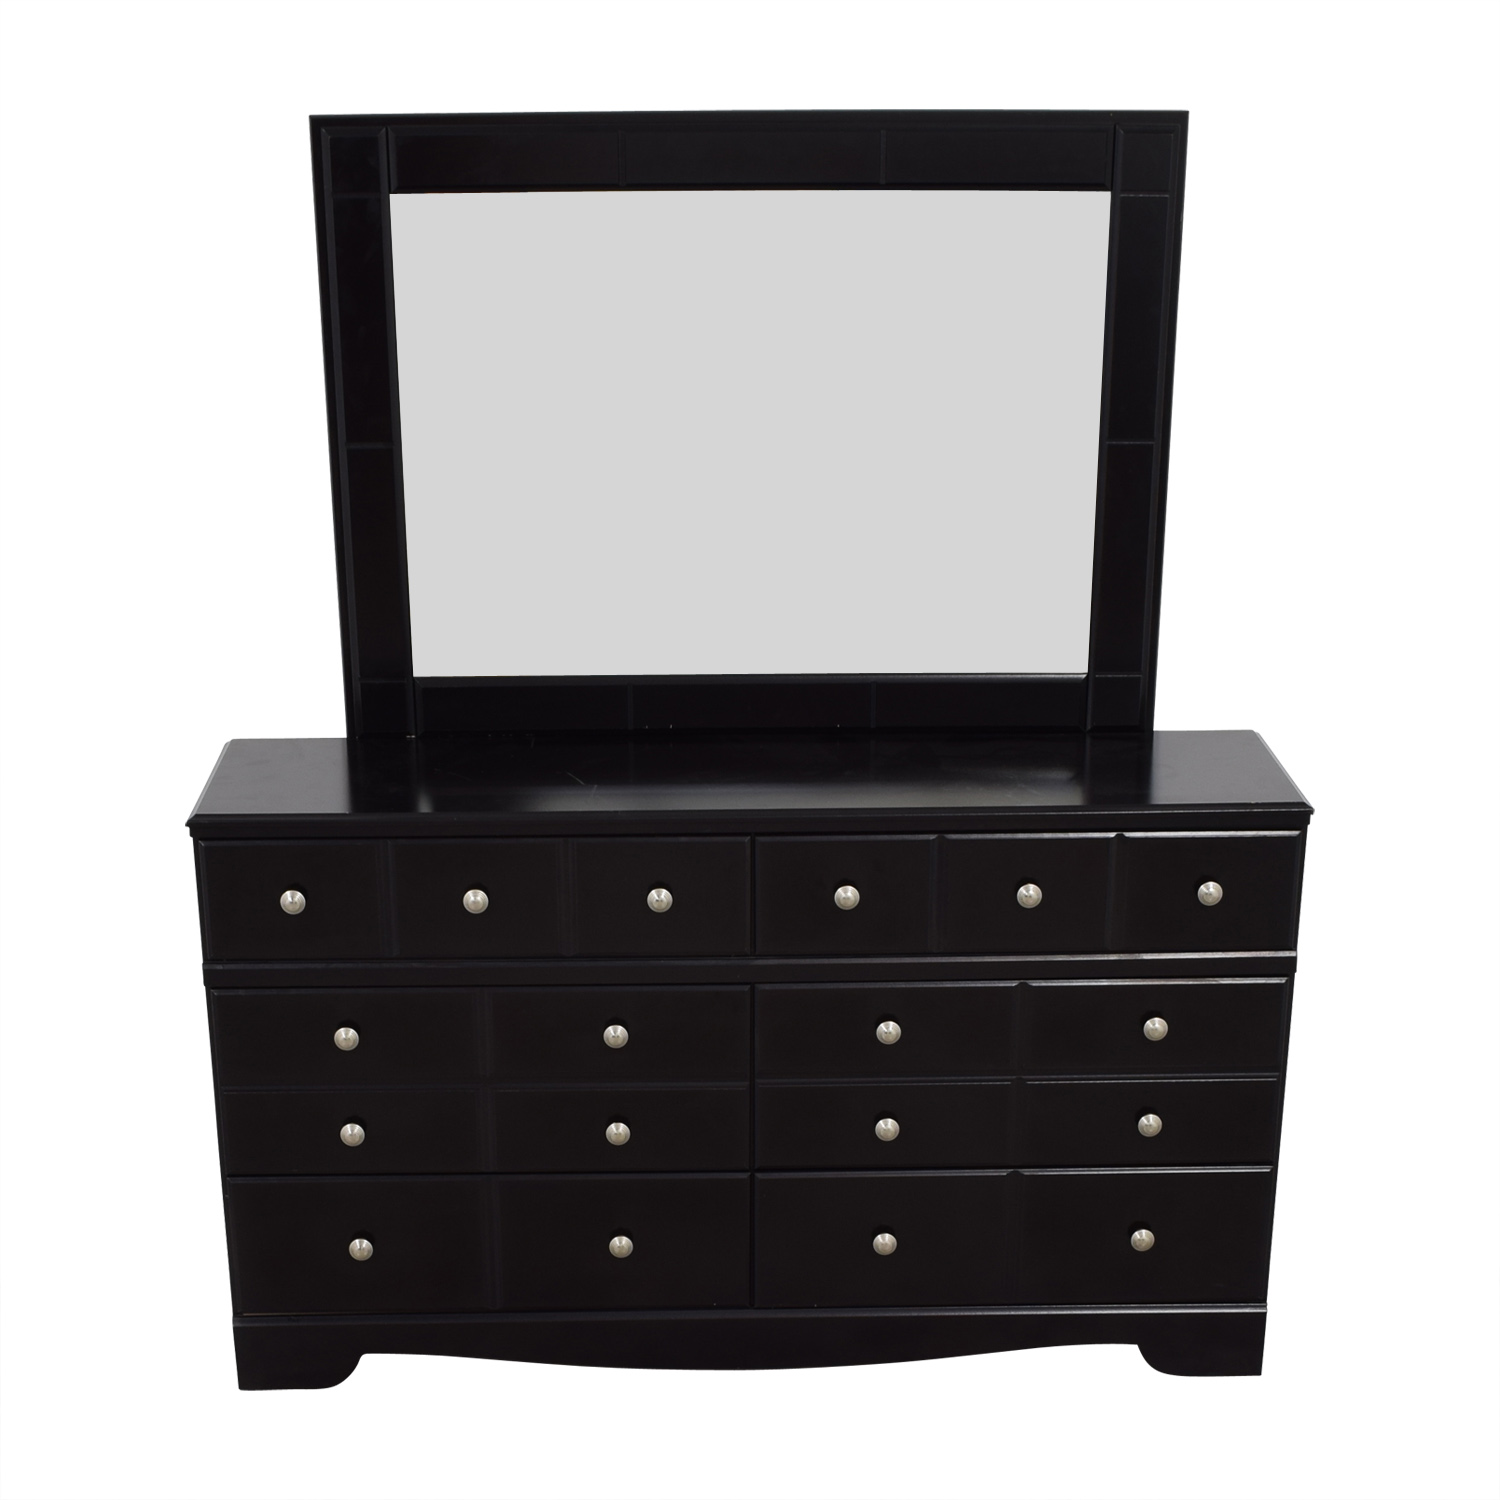 Black Six-Drawer Dresser with Mirror nj